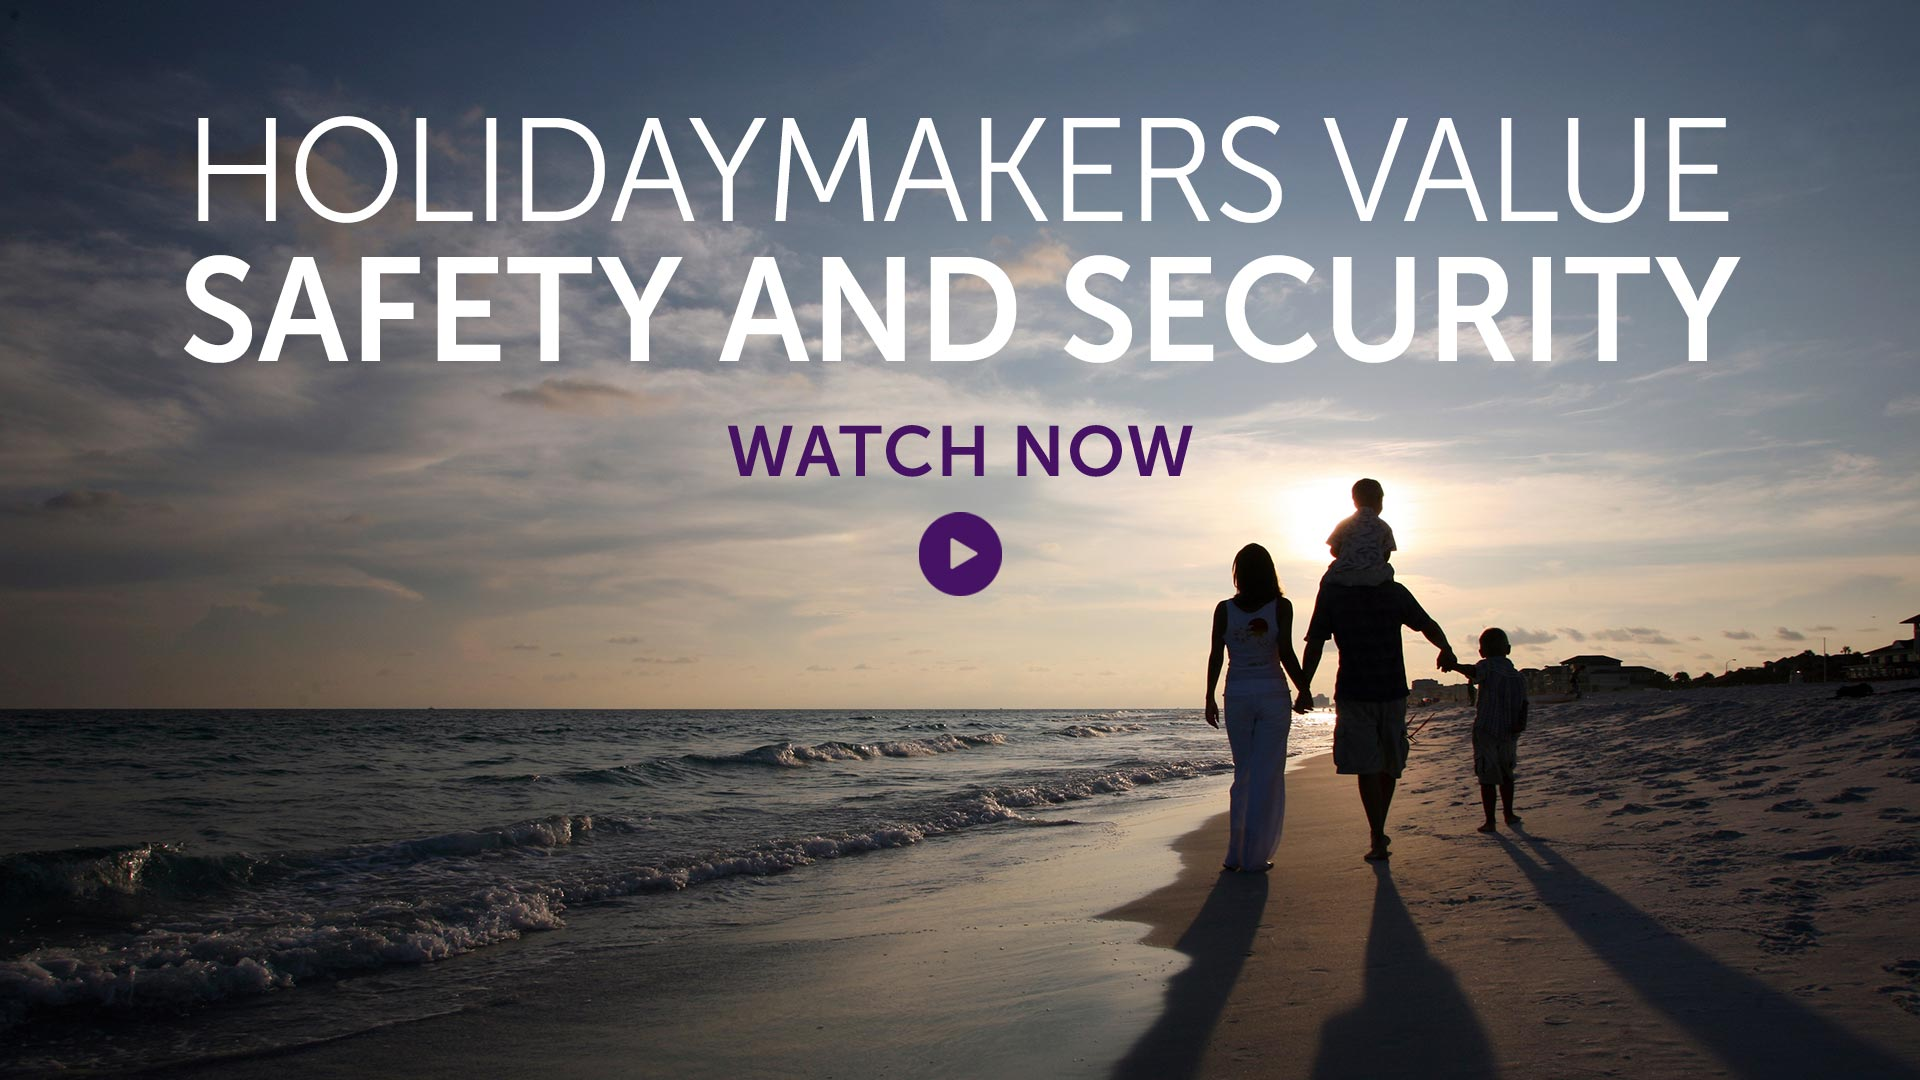 Briefing: Holidaymakers value safety and security